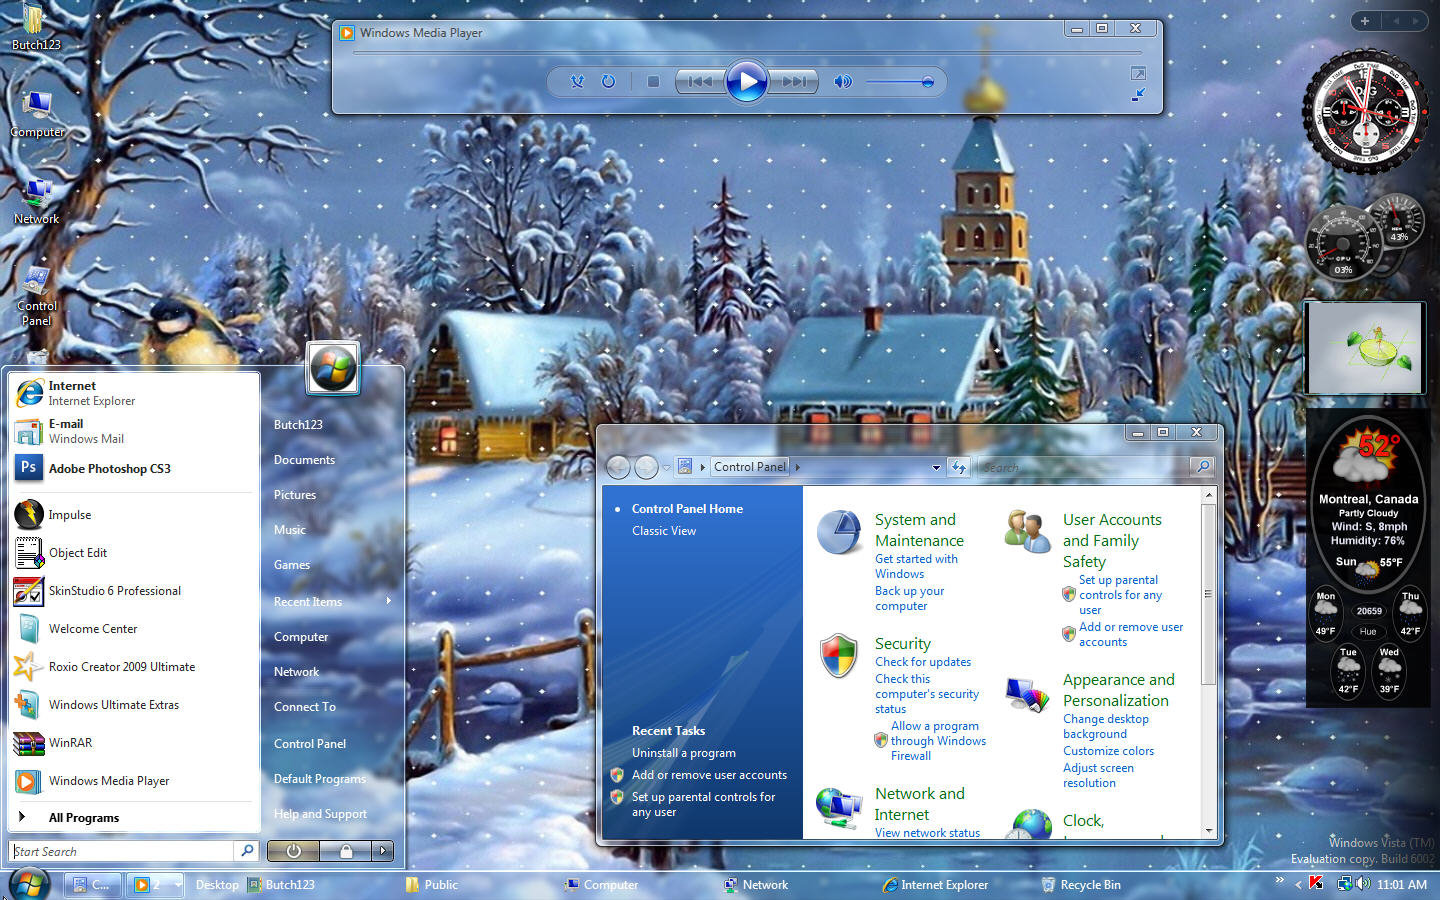 httpthemes4pcwordpresscom20121101christmas vs vista theme 1440x900